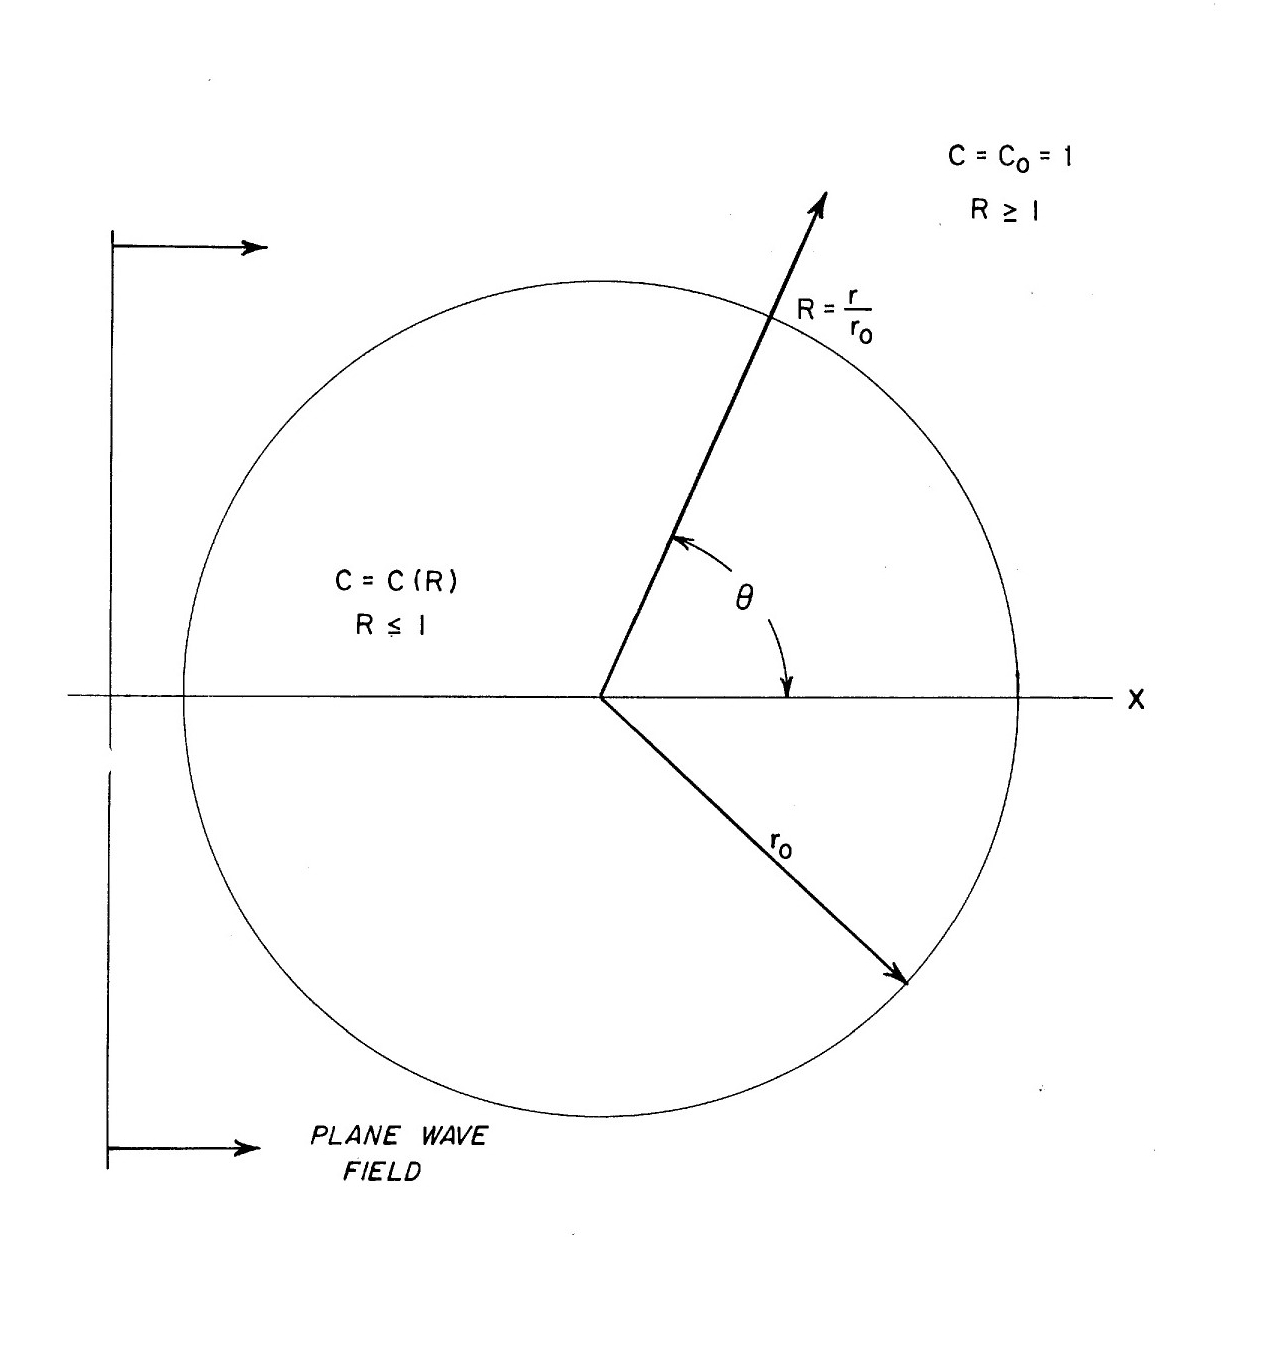 Geometry Of The Present Analysis